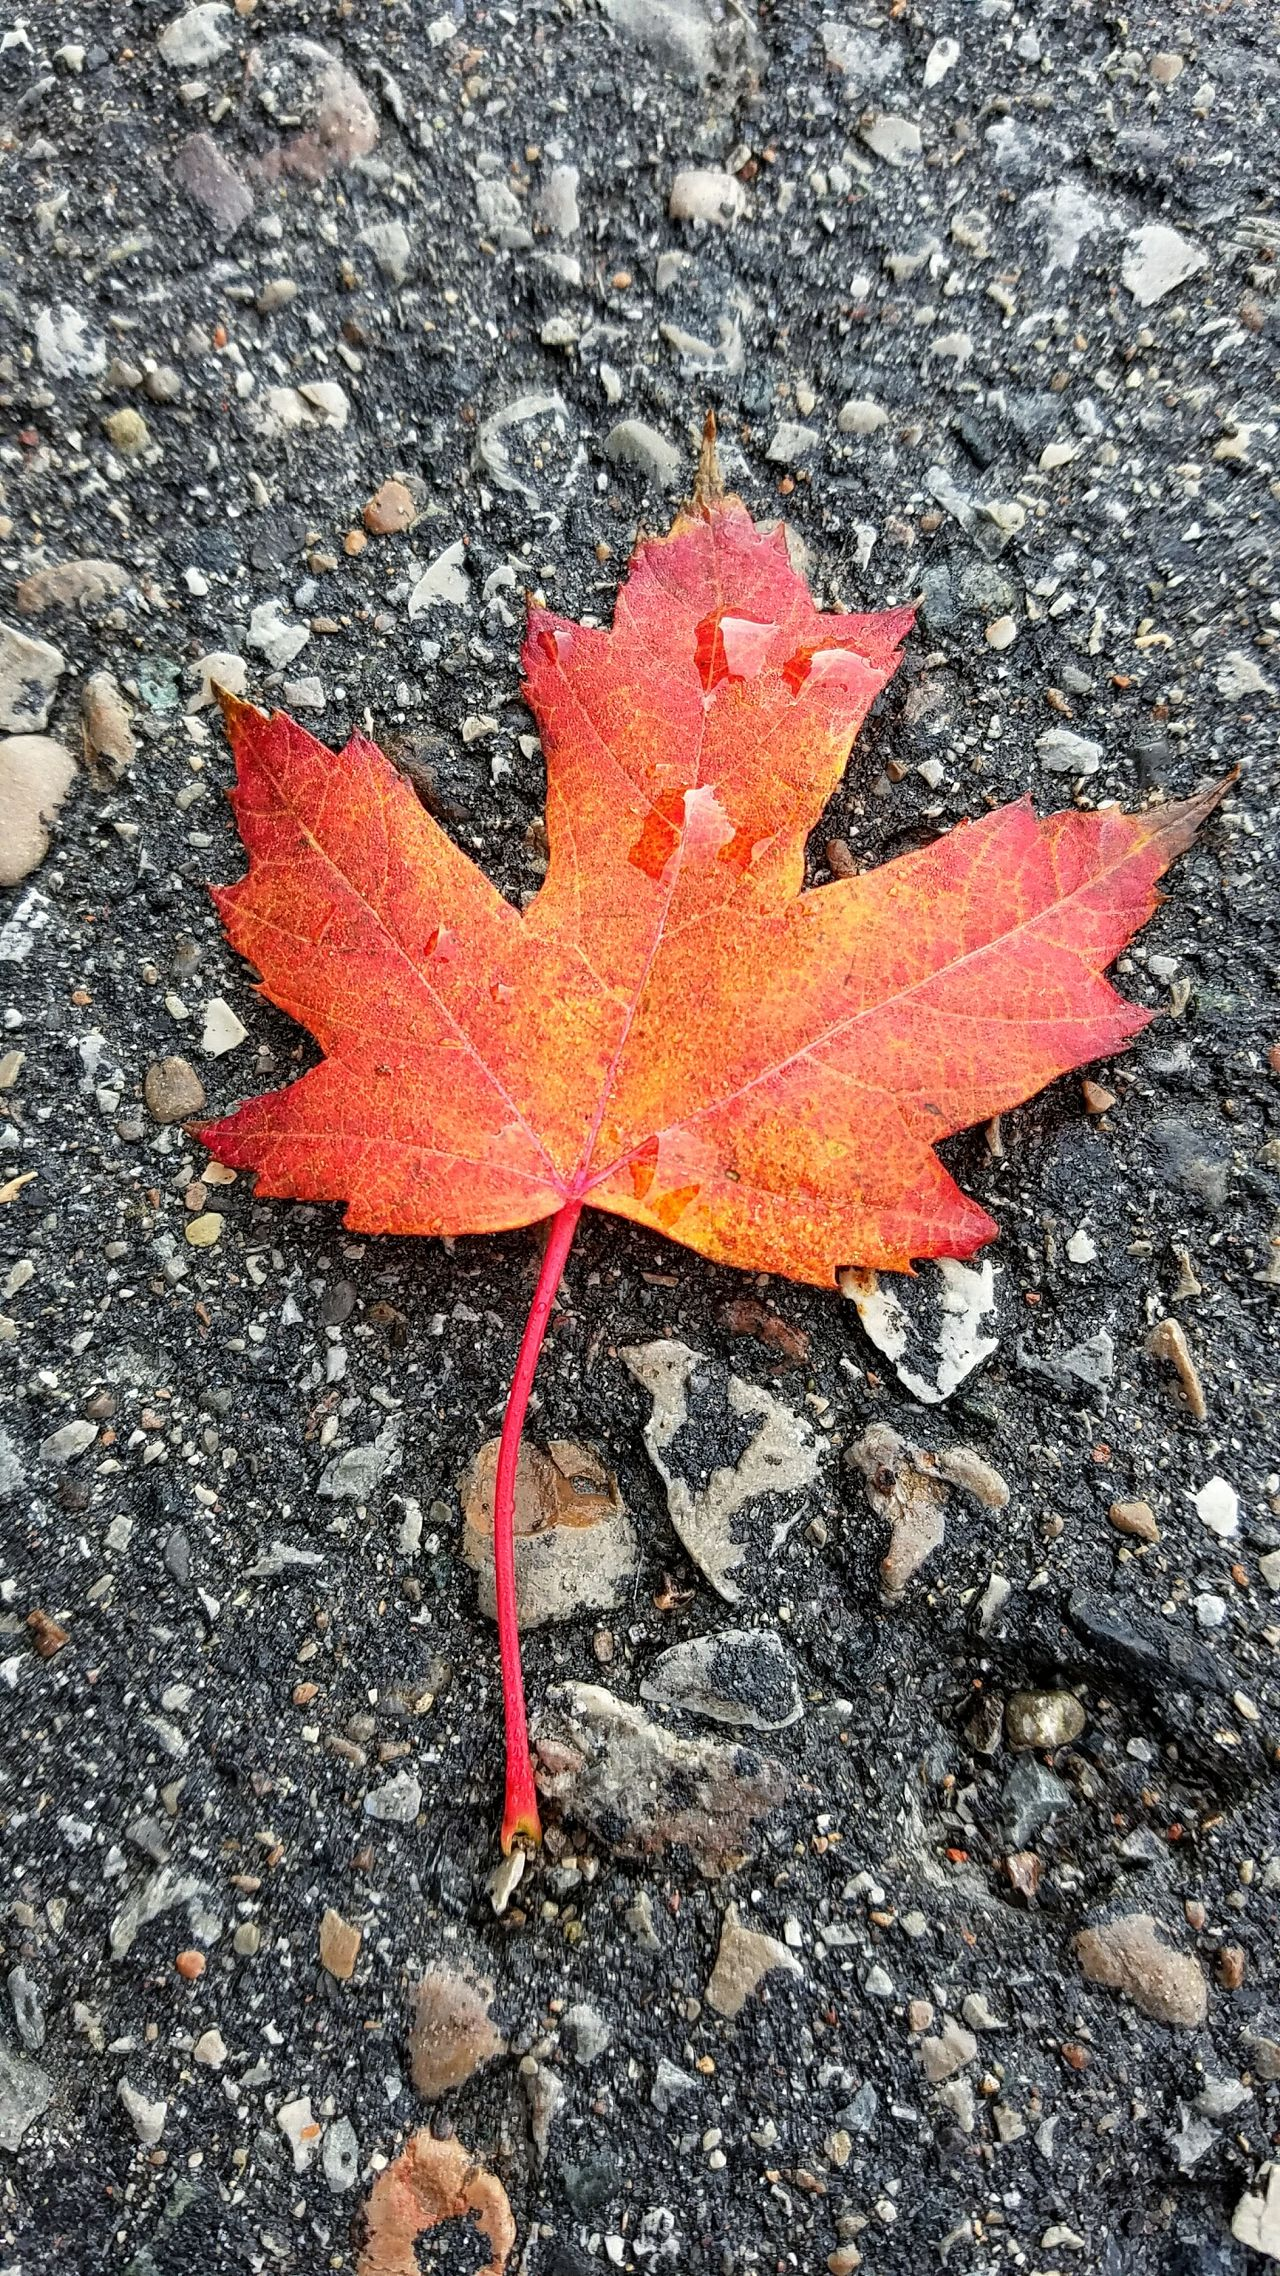 Leaf Canada Fall Autumn Autumn Leaves Autumn Colors Autumn Leaf Canadian 낙옆 가을가을 정서 Fall Colors 단풍 캐나다 High Angle View Red No People Day Nature Close-up Outdoors Maple Leaf